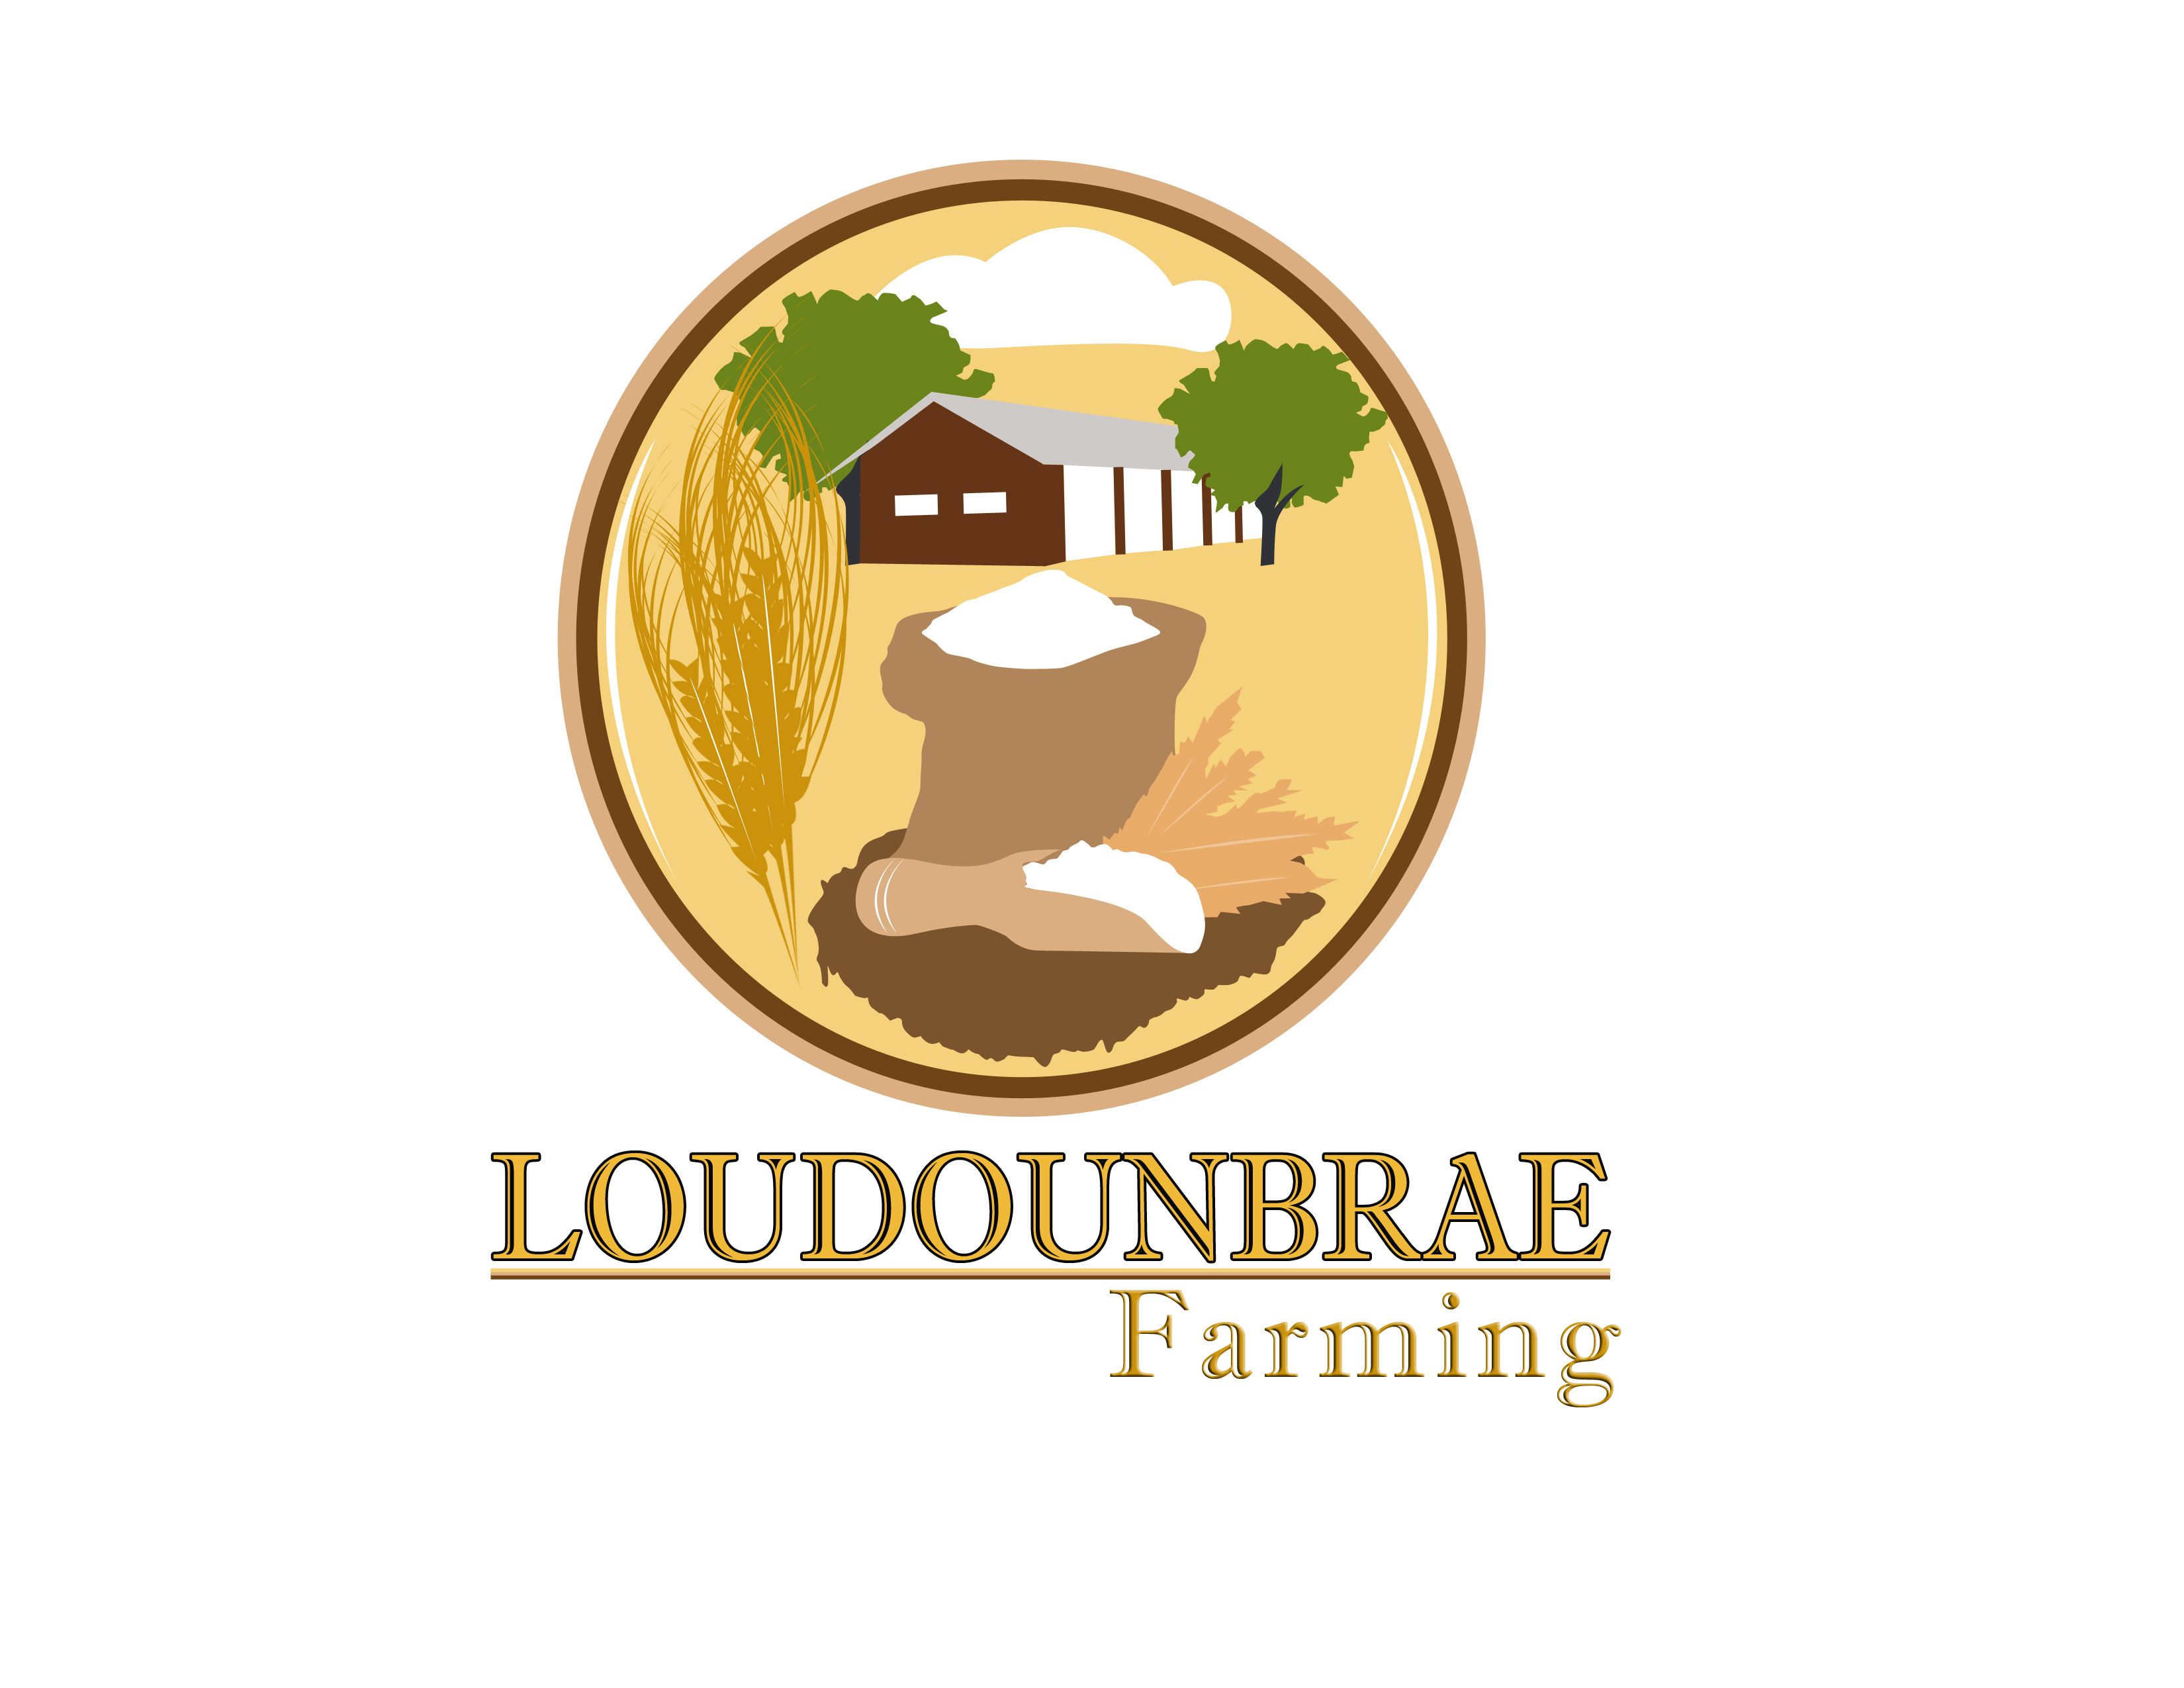 Logo Design by Jo Cres Jao - Entry No. 83 in the Logo Design Contest Creative Logo Design for Loudounbrae Farming.